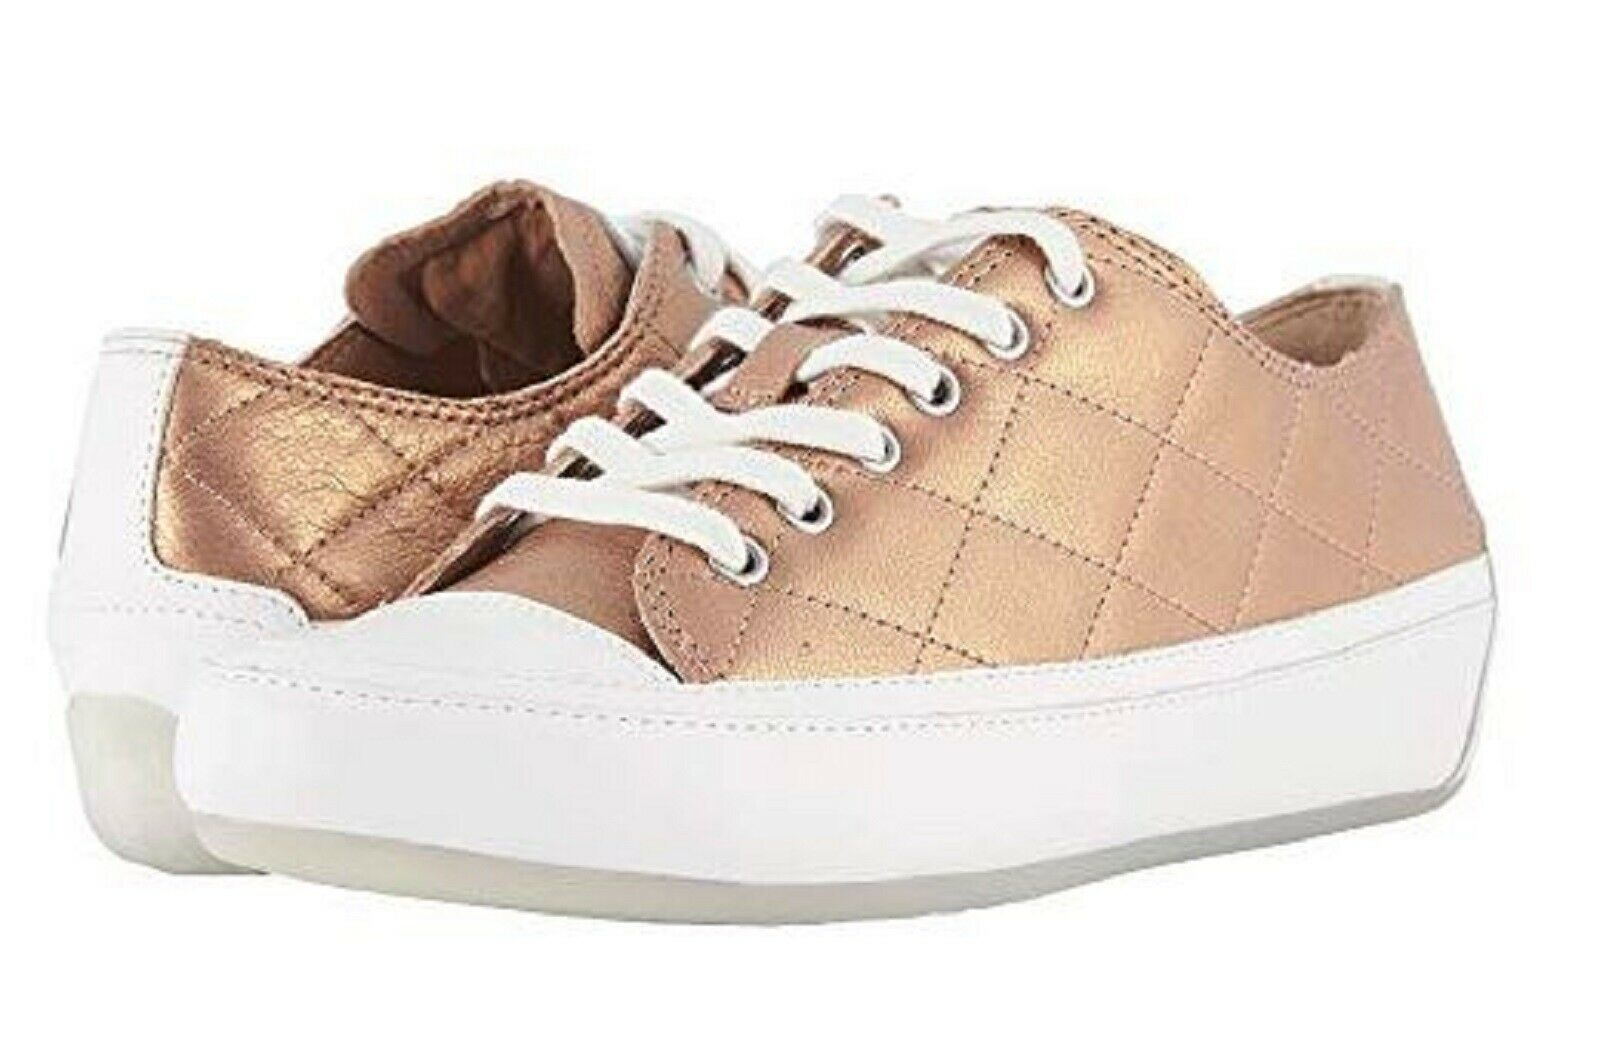 Vionic Orthaheel DELIGHT EDIE Quilted Leather Sneakers pink gold 6.5 M NIB